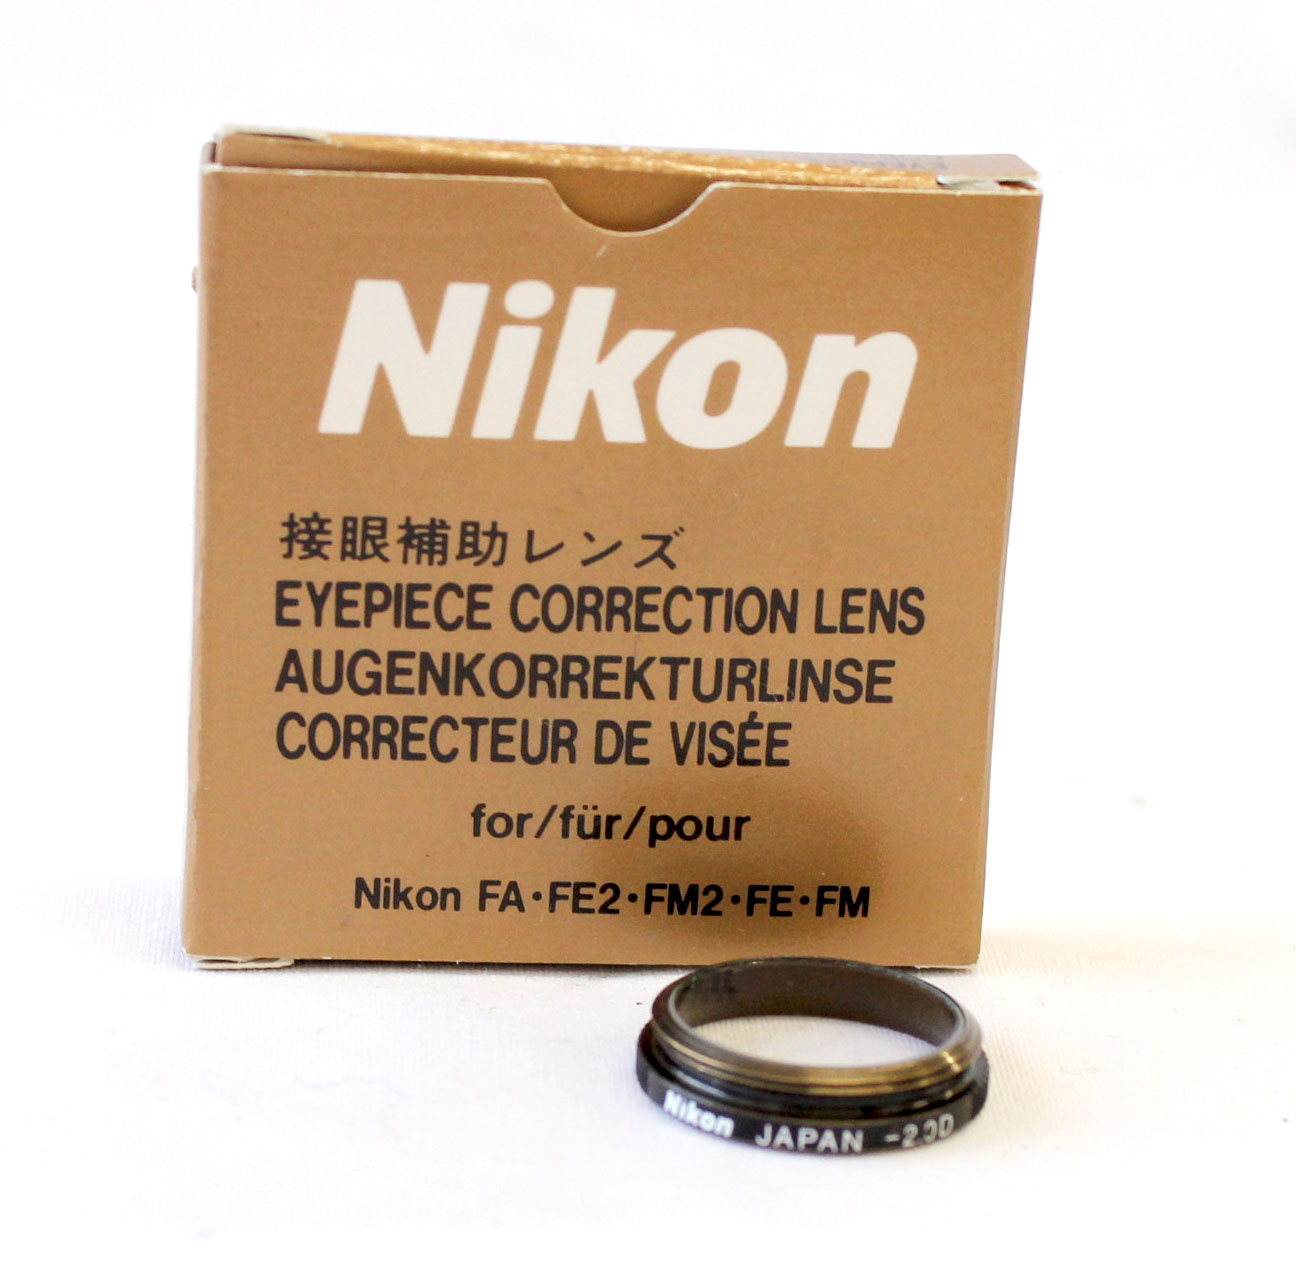 Japan Used Camera Shop | Nikon Eyepiece Correction Lens -2.0 Diopter for Nikon FA, FE2, FM2, FE, FM from Japan